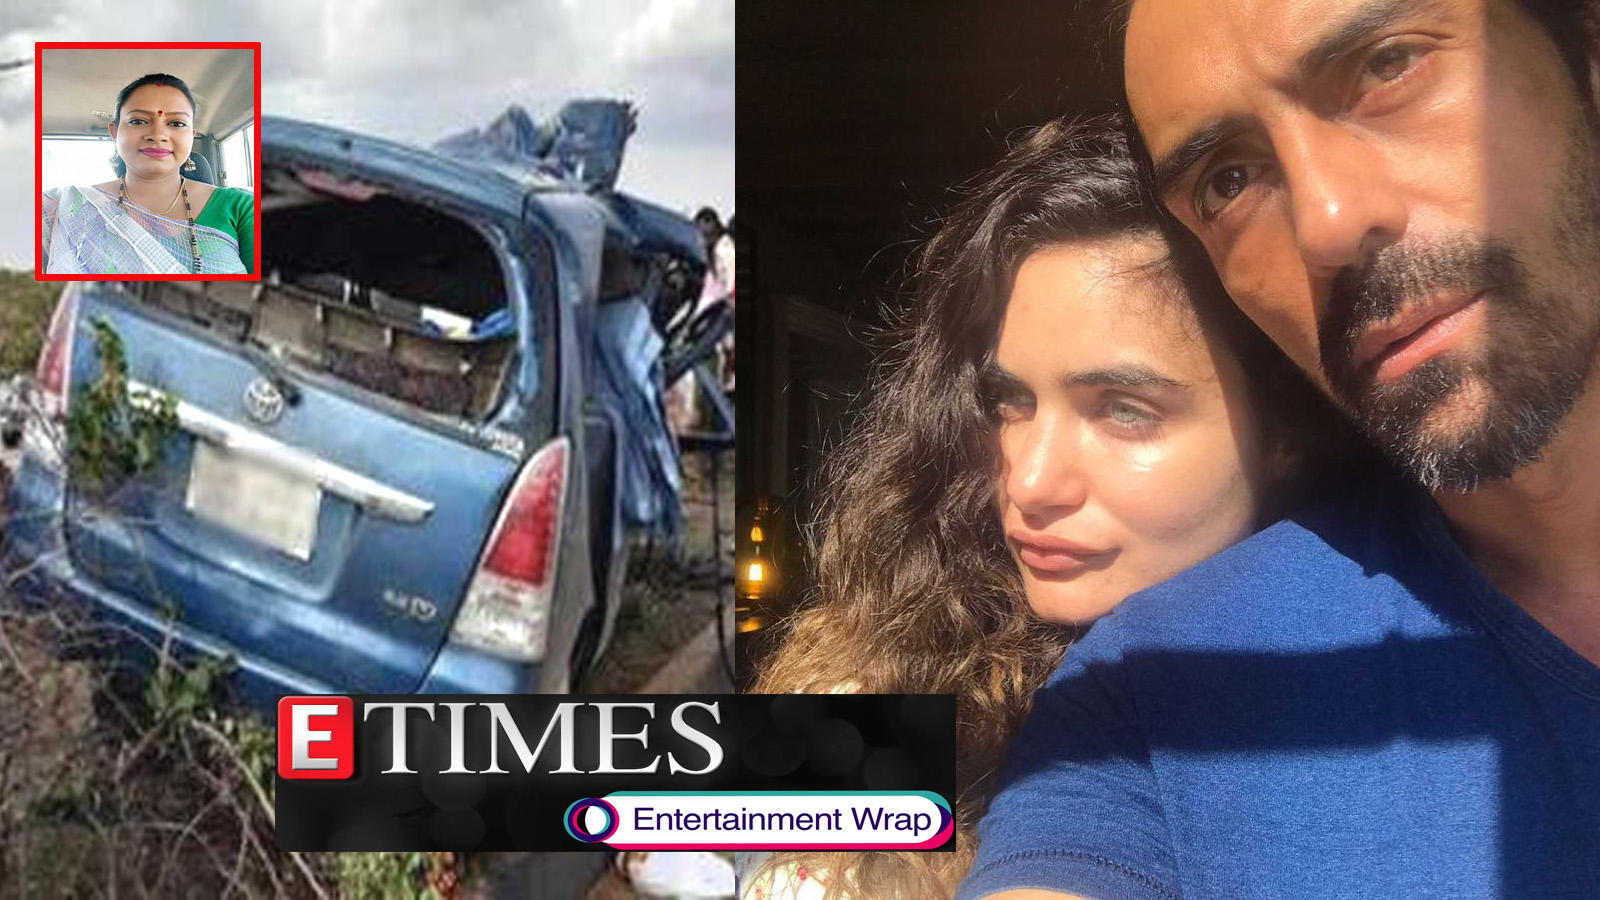 Actress dies in road accident